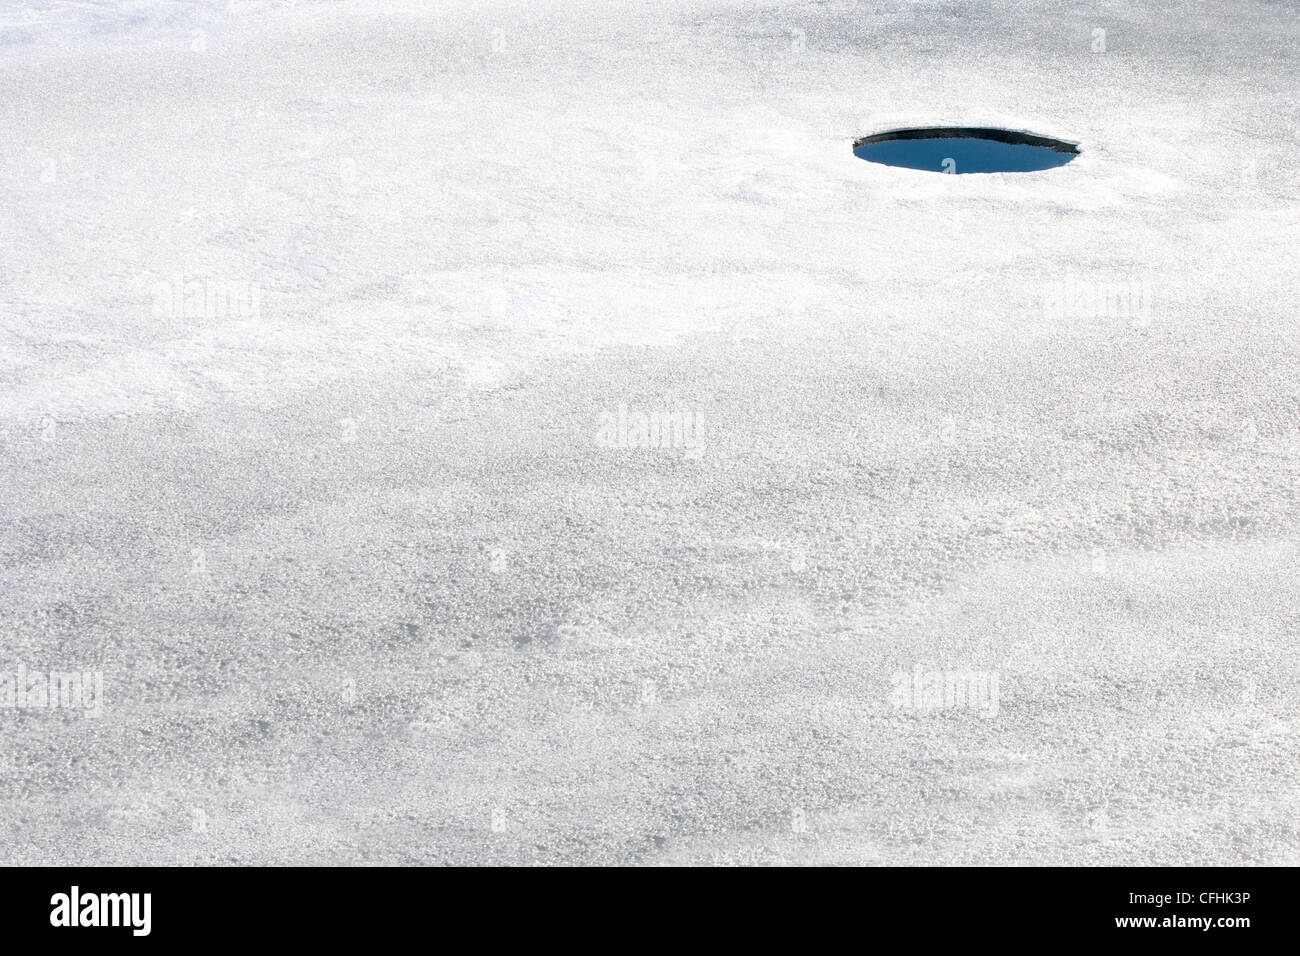 A small hole in thin ice. - Stock Image